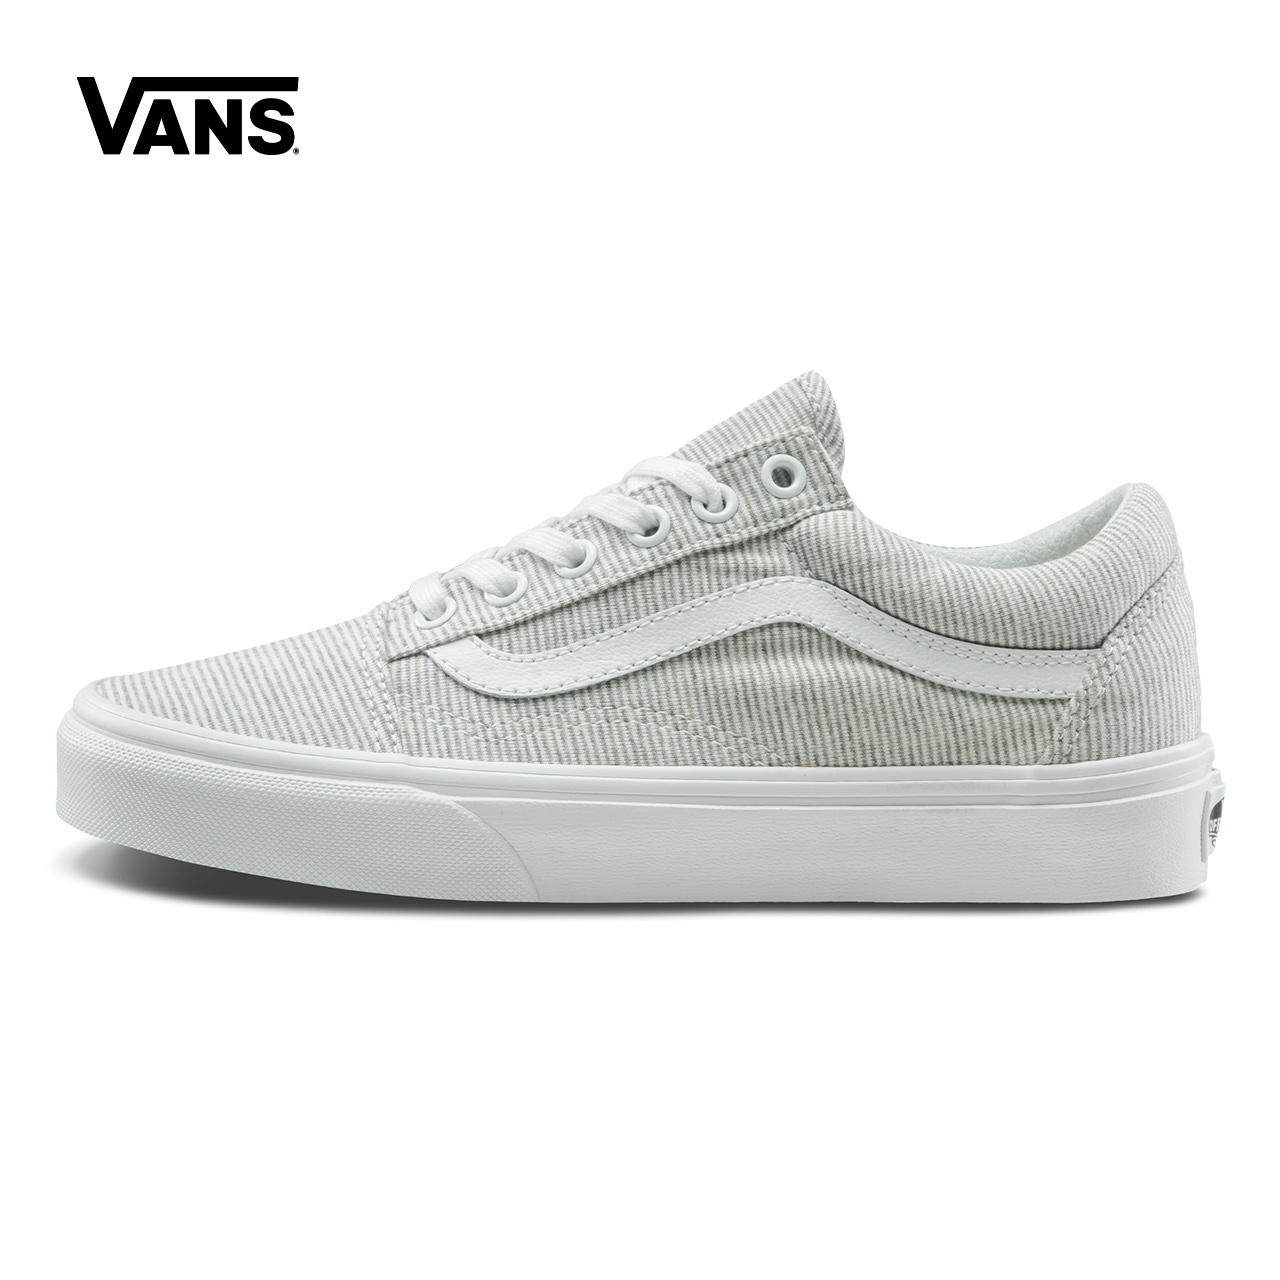 Original New Arrival Vans Womens Classic Old Skool Low-top Skateboarding Shoes Sneakers Canvas Sport Outdoor Grey VN0A38G1I1F original new arrival van classic unisex skateboarding shoes old skool sport outdoor canvas comfortable sneakers vn000d3hw00